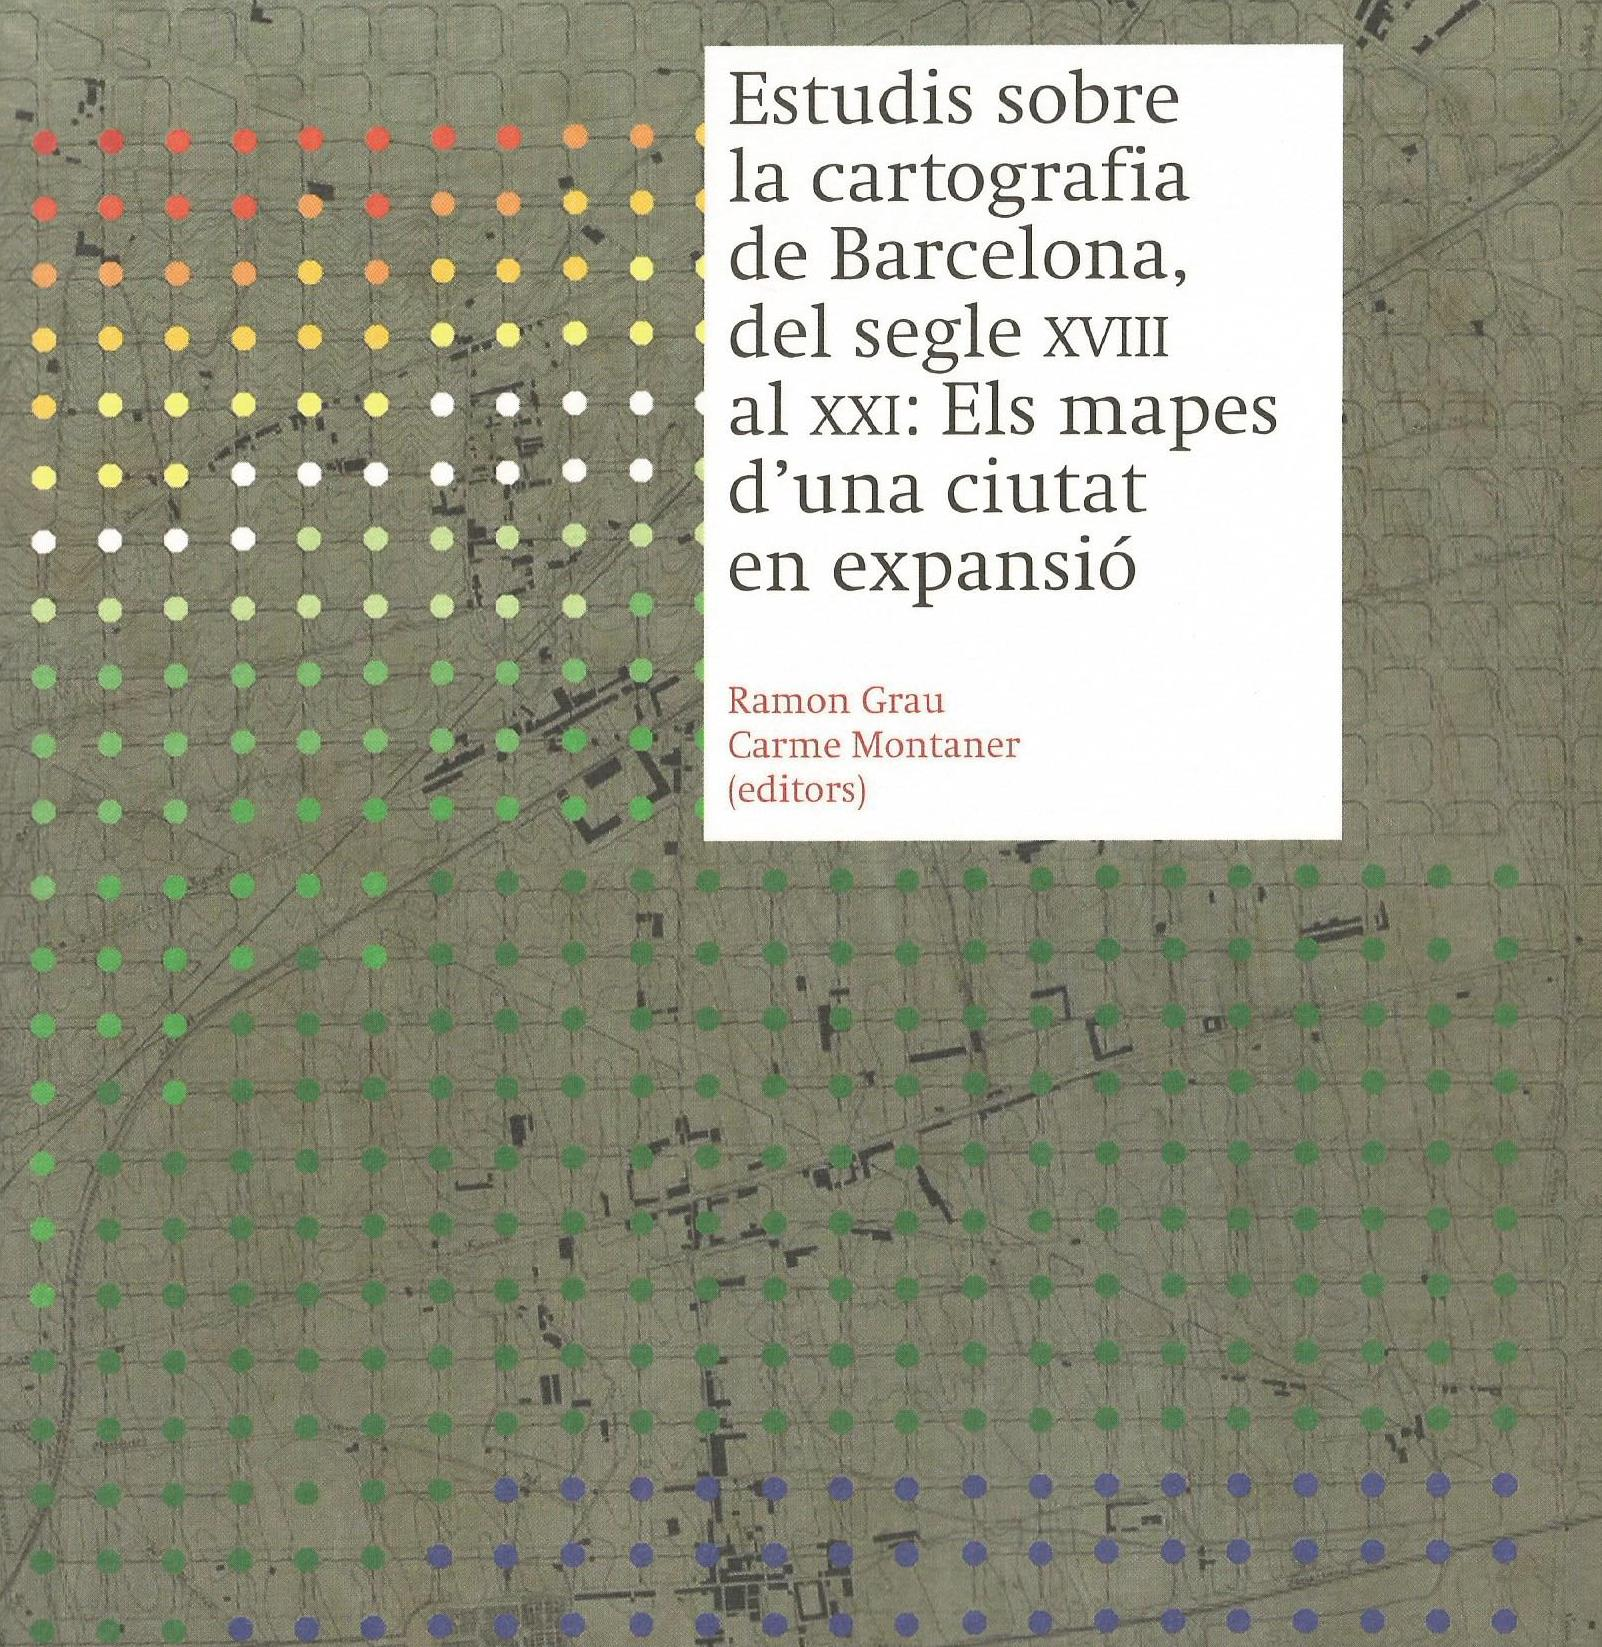 Project 6. Urban cartography in Spain (18th-19th centuries): the role of city councils and military organisations